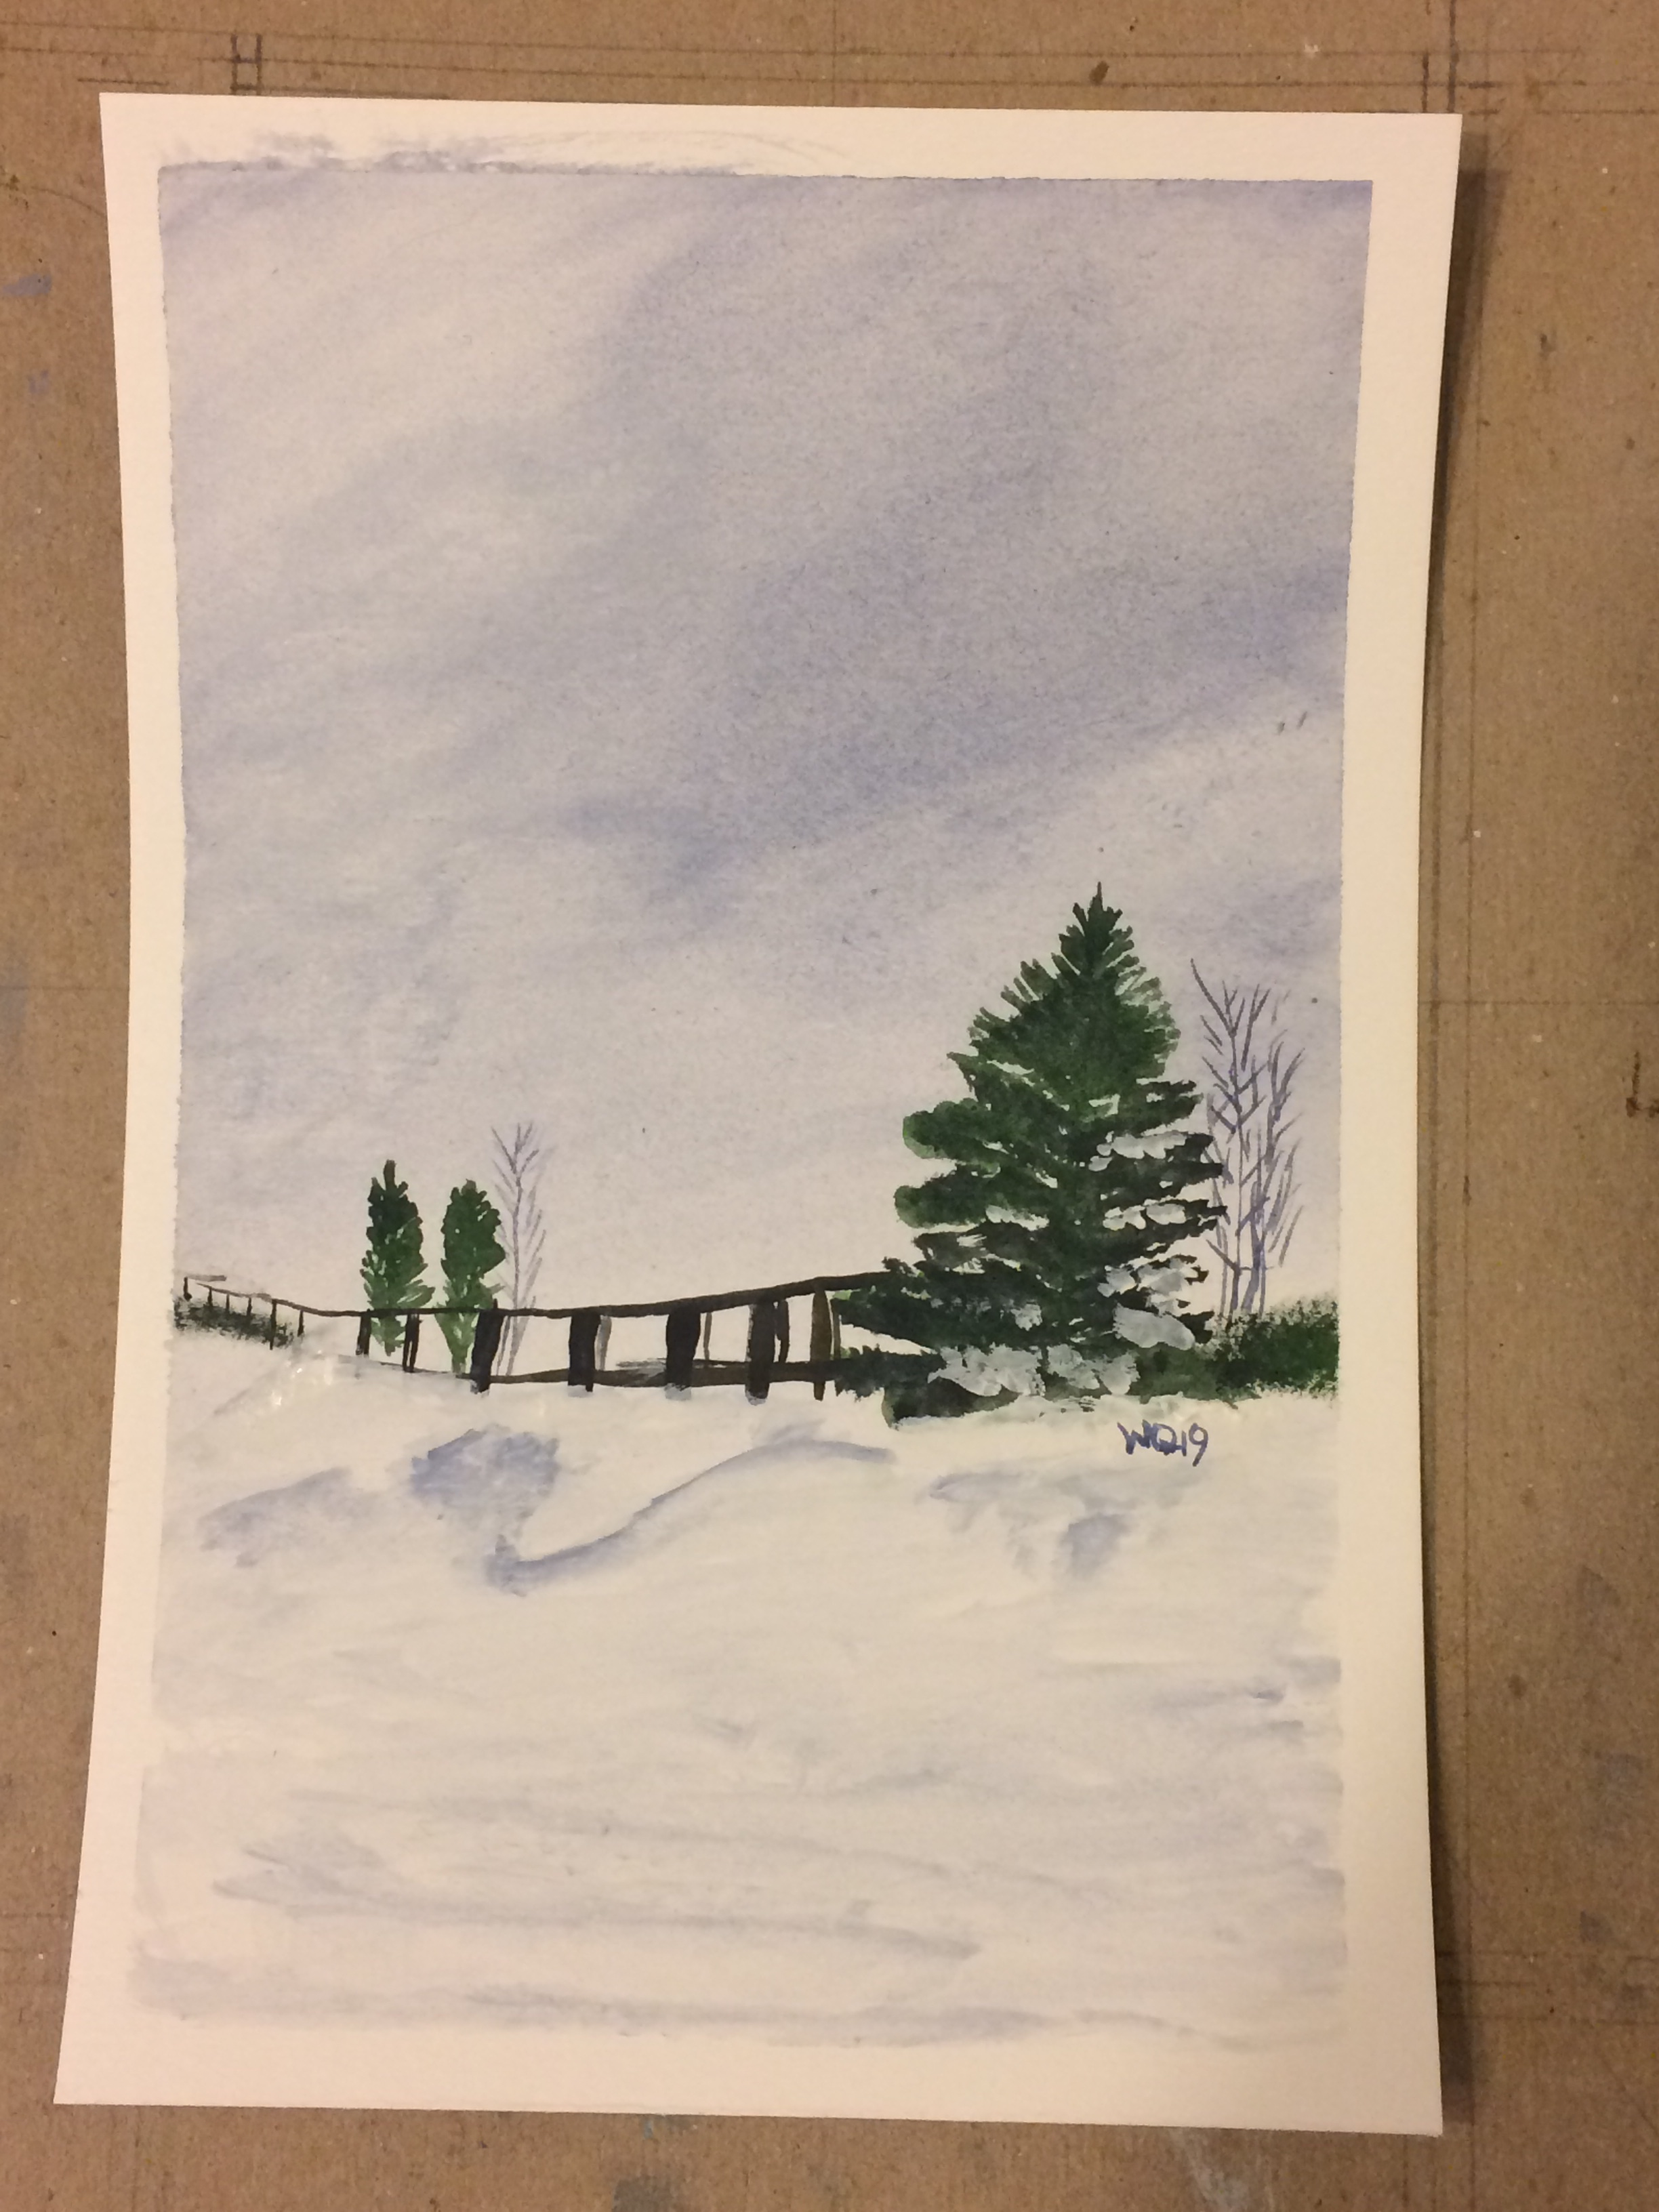 Watercolour painting landscape snow fence and trees